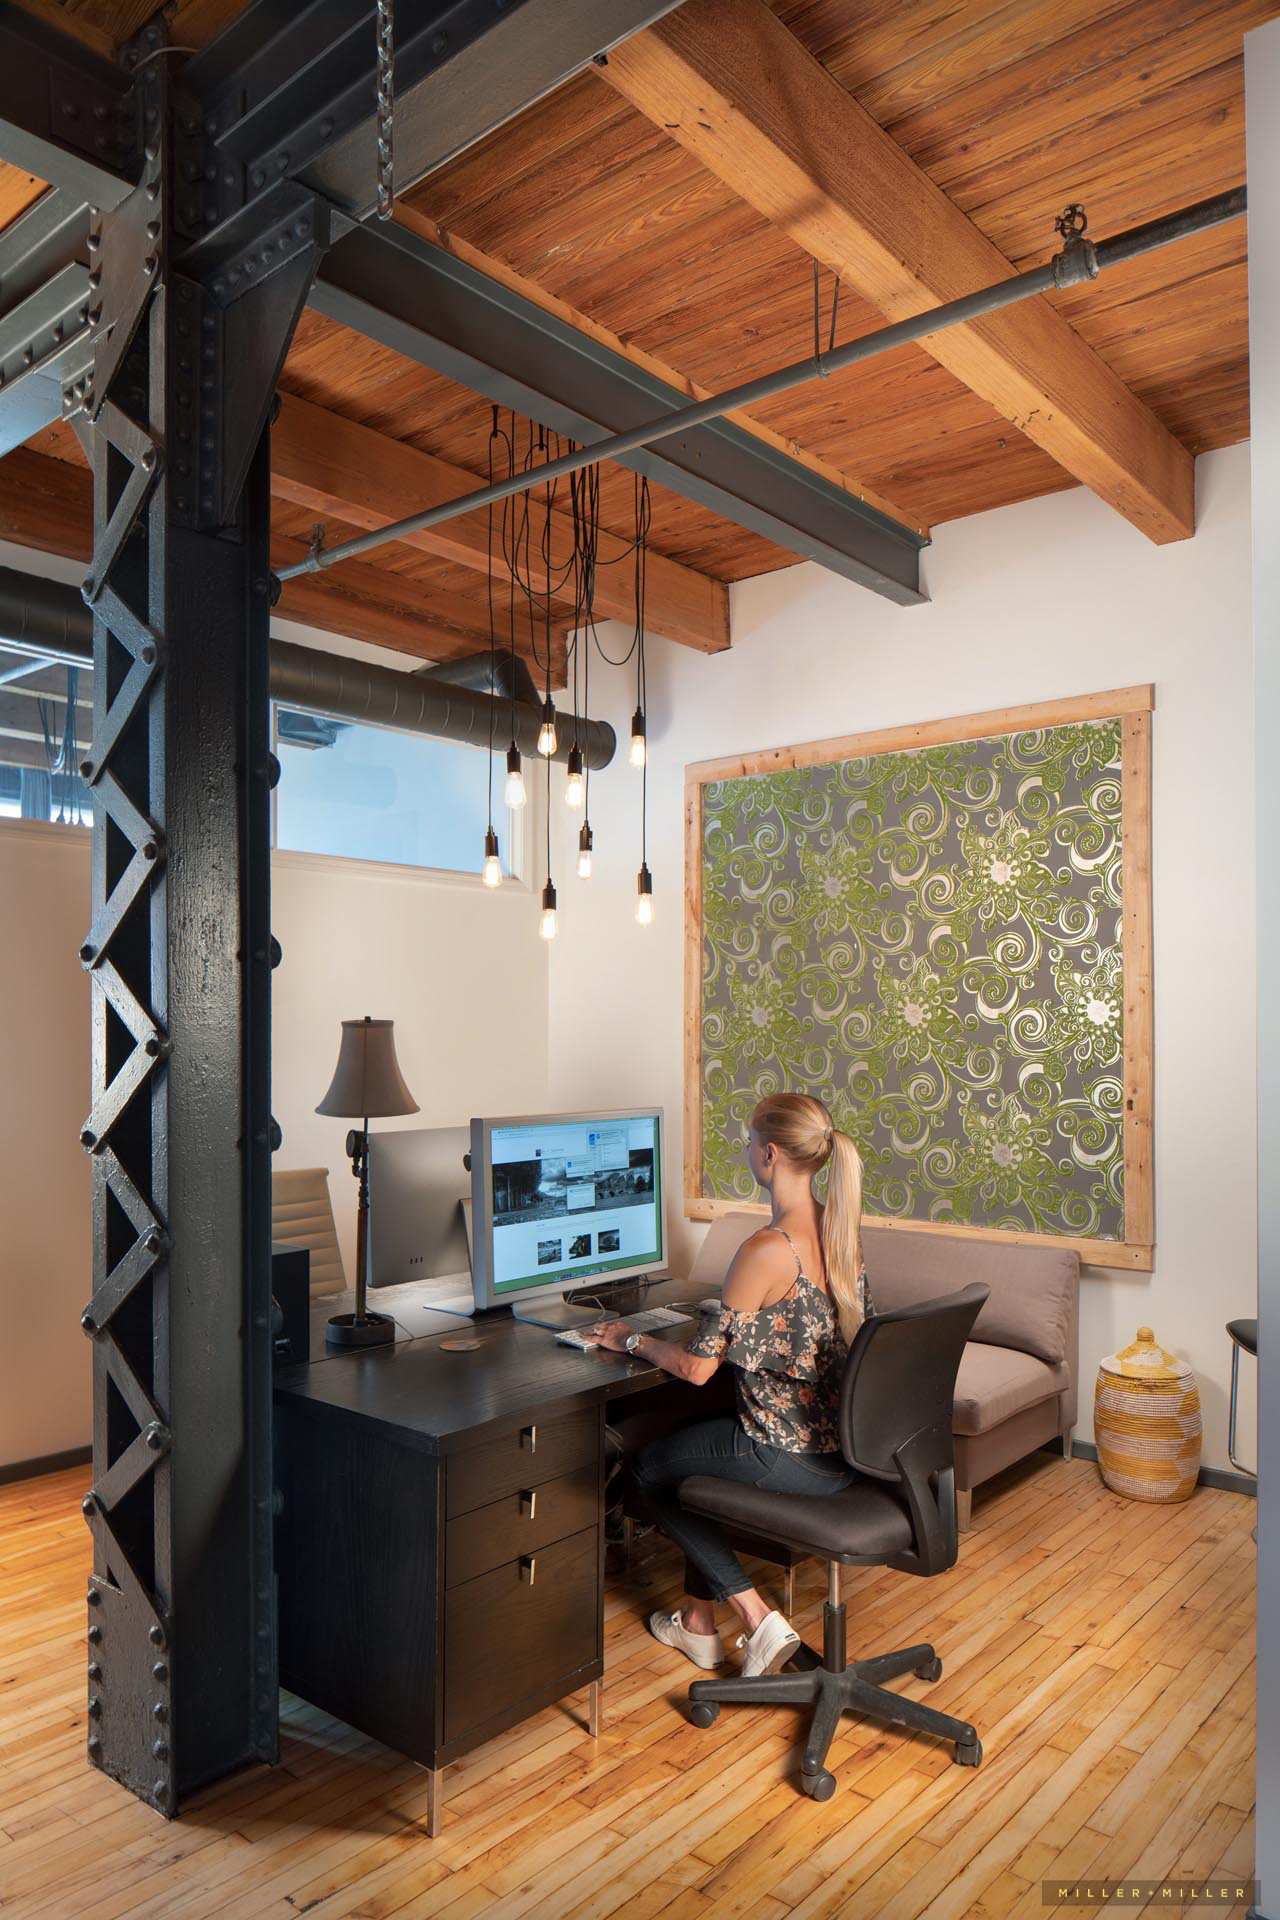 Loft River West Loop environmental people interior room photography